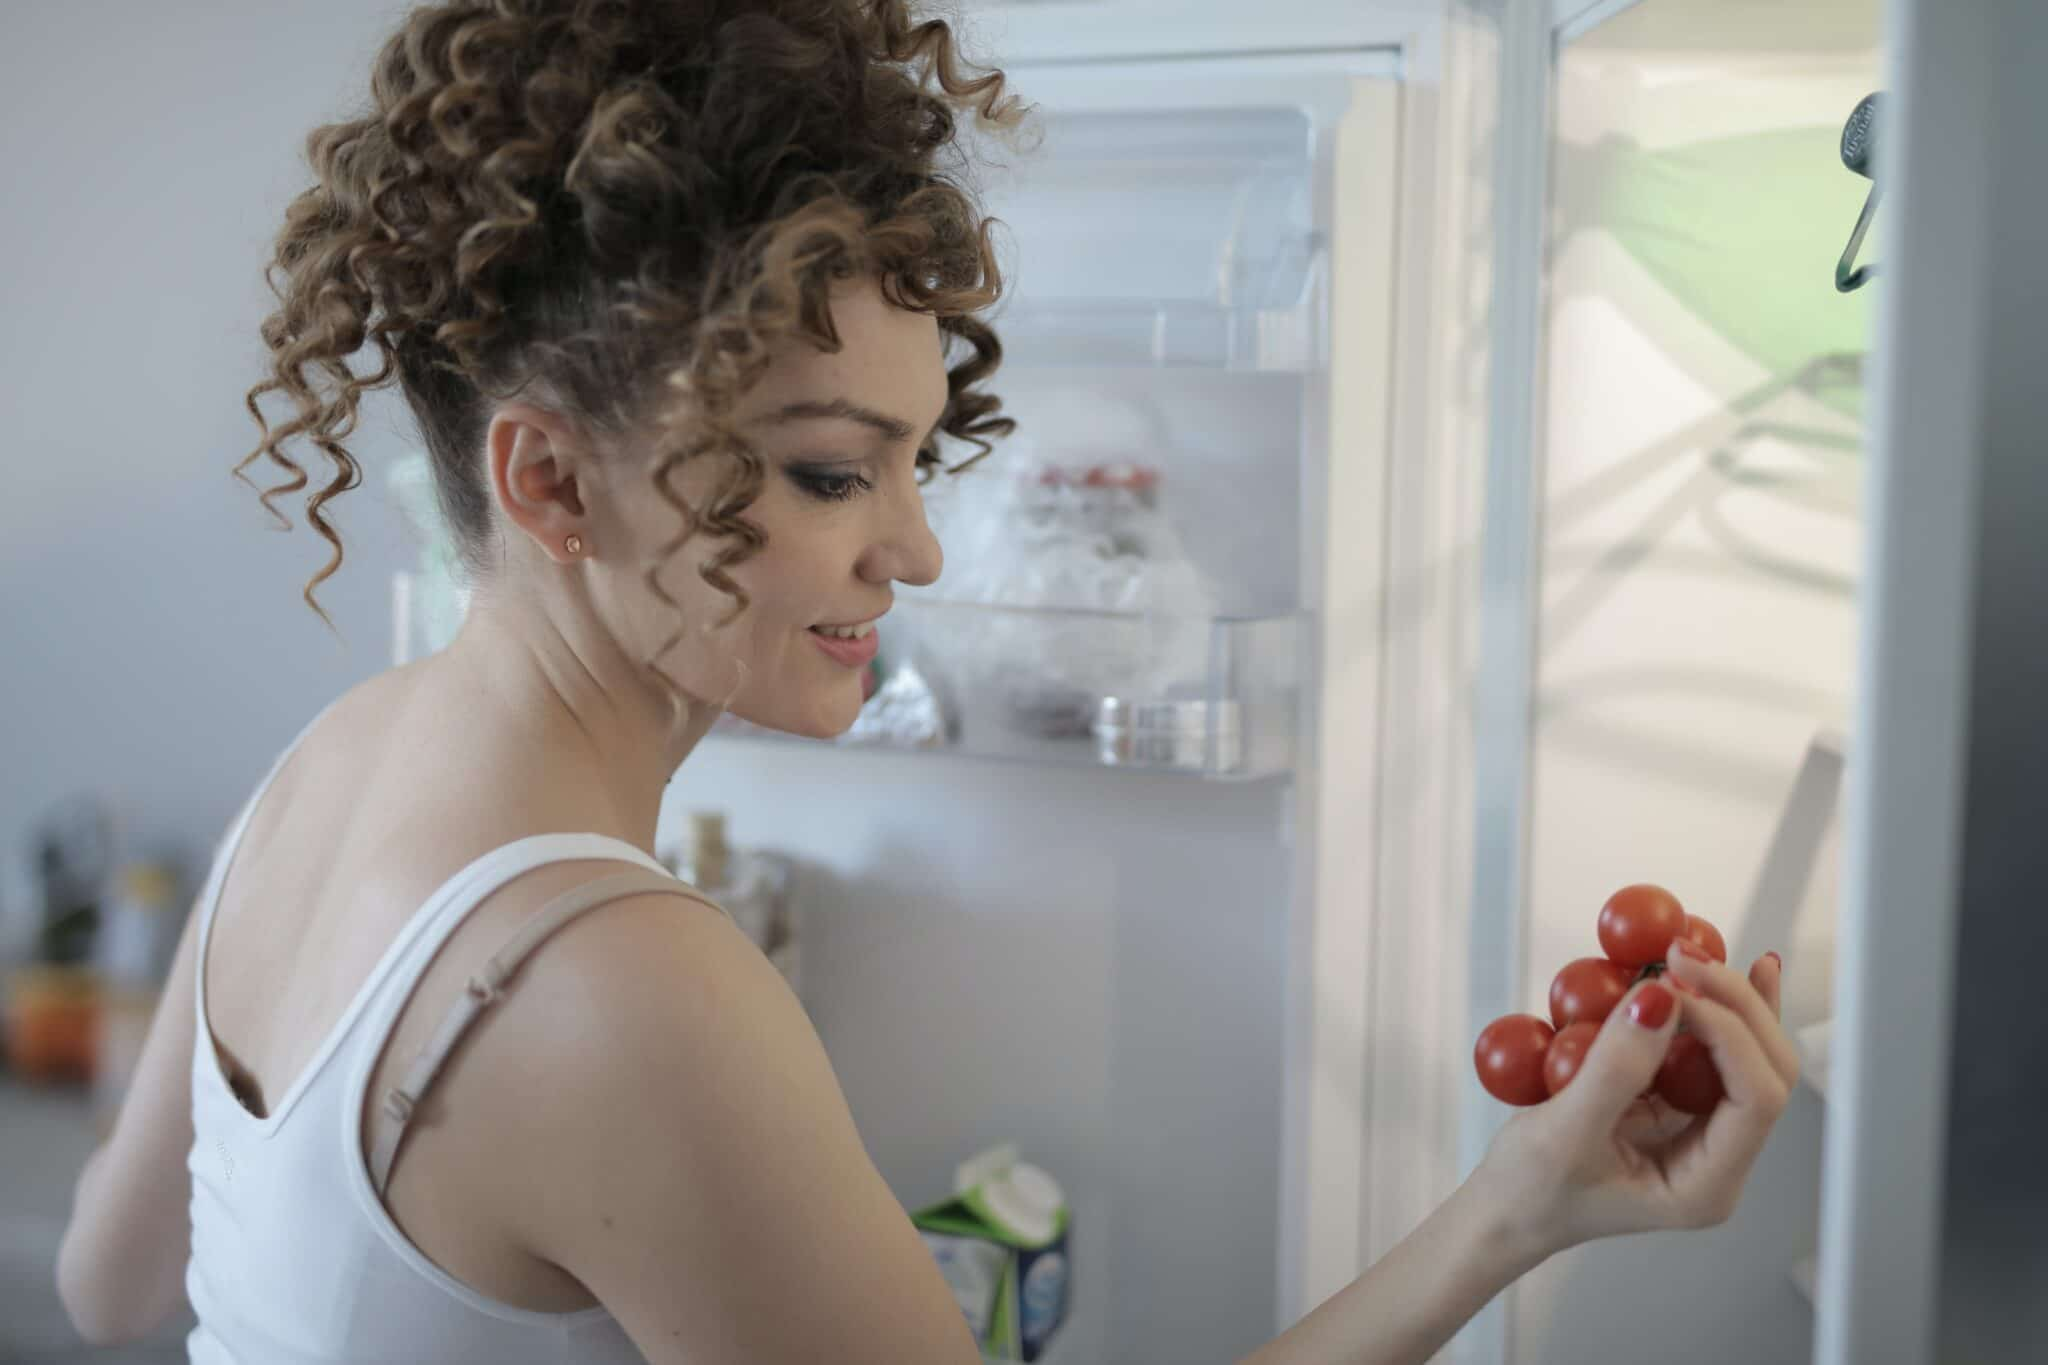 woman looking at tomatoes in fridge